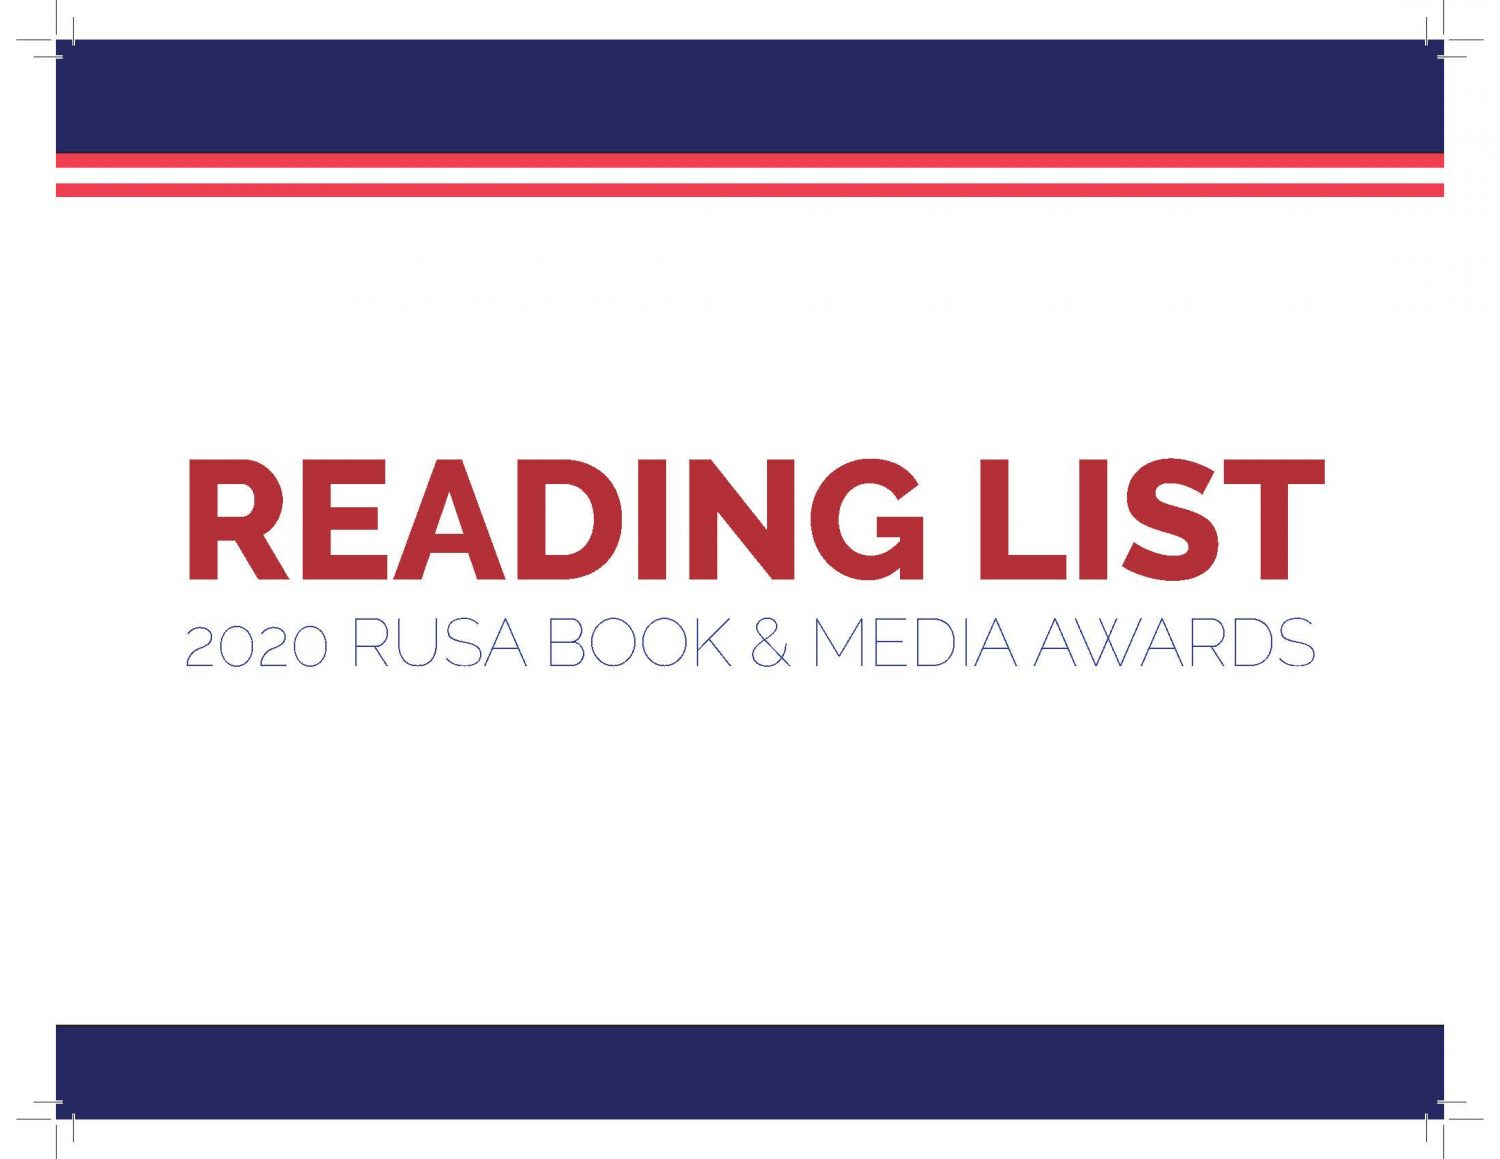 2020 Reading List: Year's best in genre fiction for adult Readers